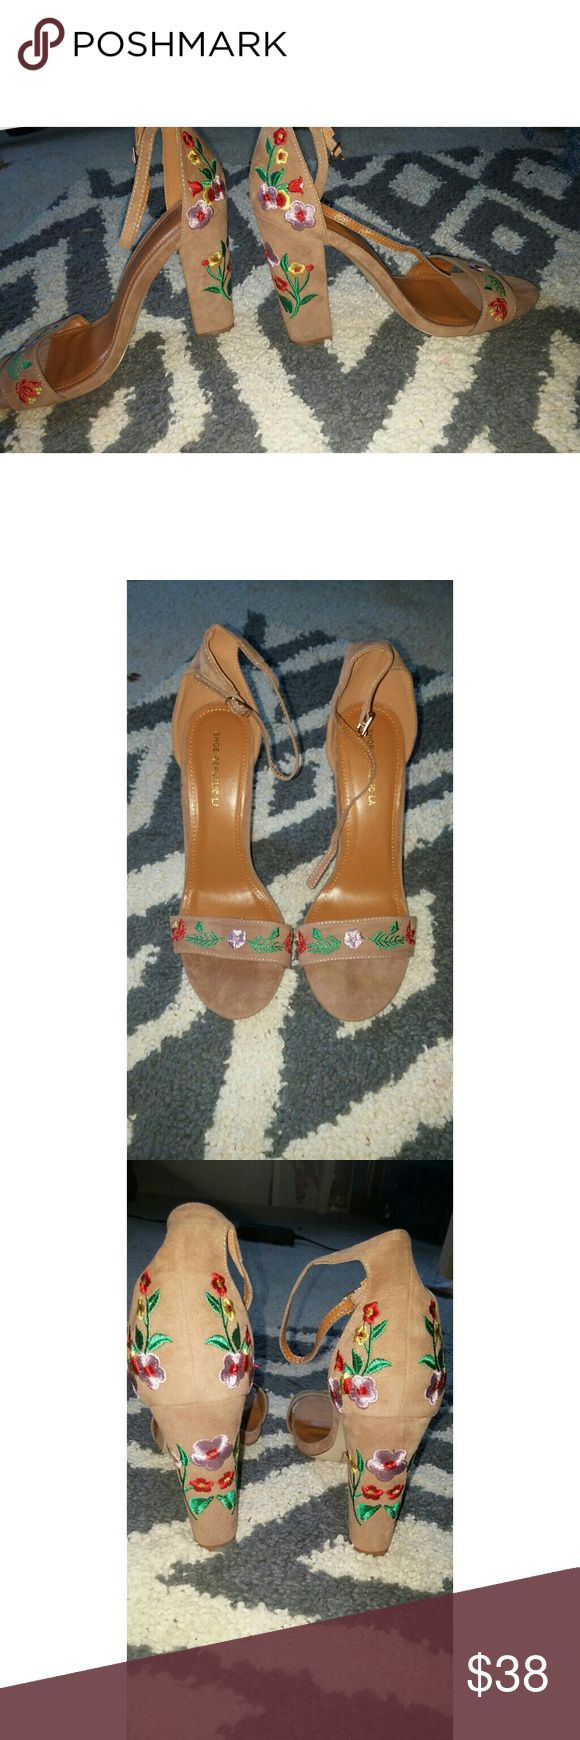 Flower Embroidered Strappy Heels BRAND NEW IN BOXLola, Sold out, Lola Shoetique strappy open toed pumps. Camel colored suede, bright flower embroidery. So cute and comfortable. 4 inch heel. Shoes Heels